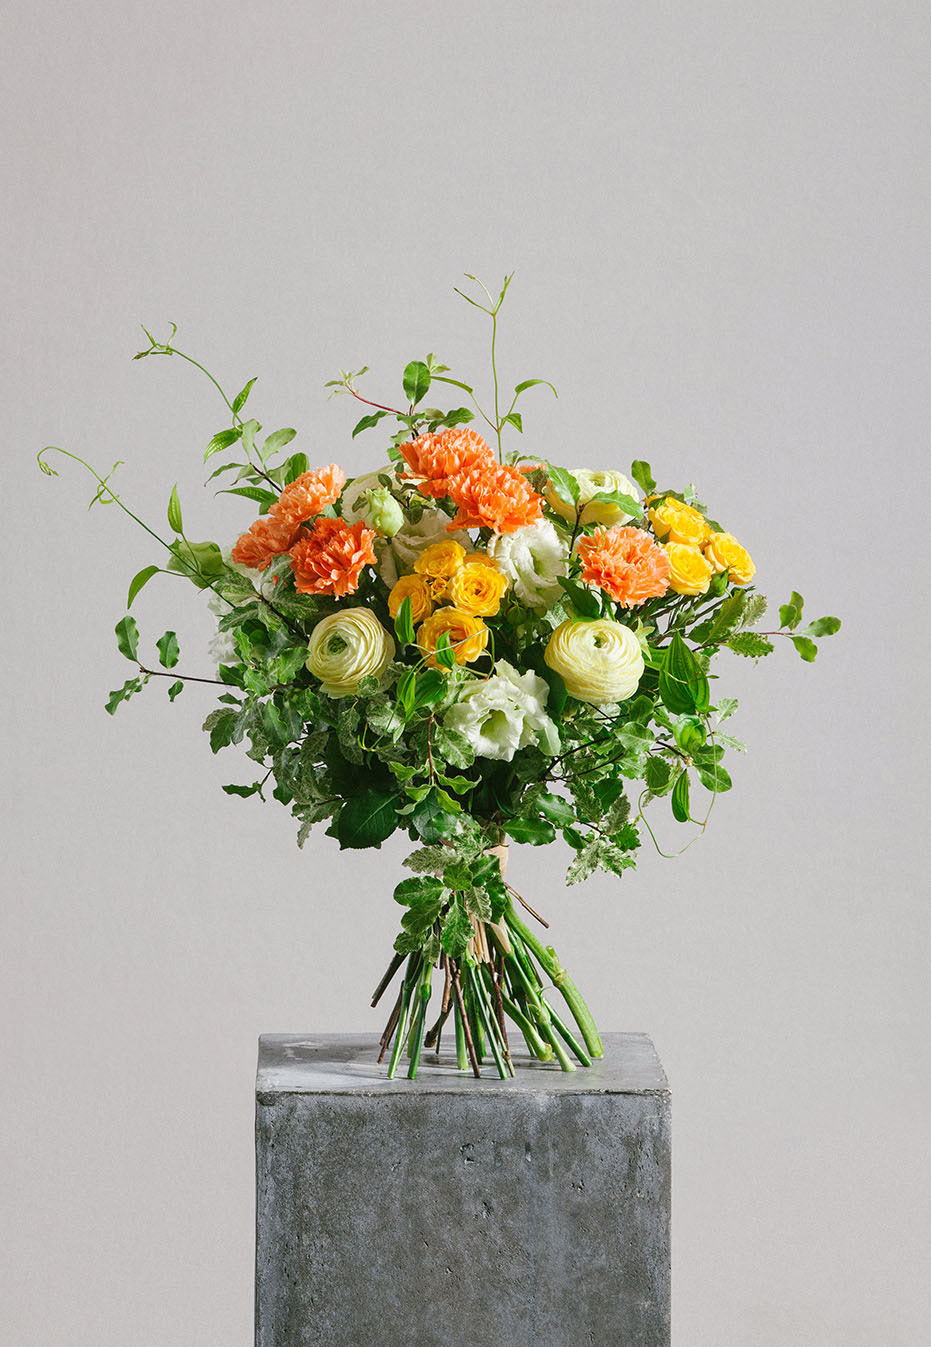 flower bouquet of carnation and ranunculus by flannel flowers